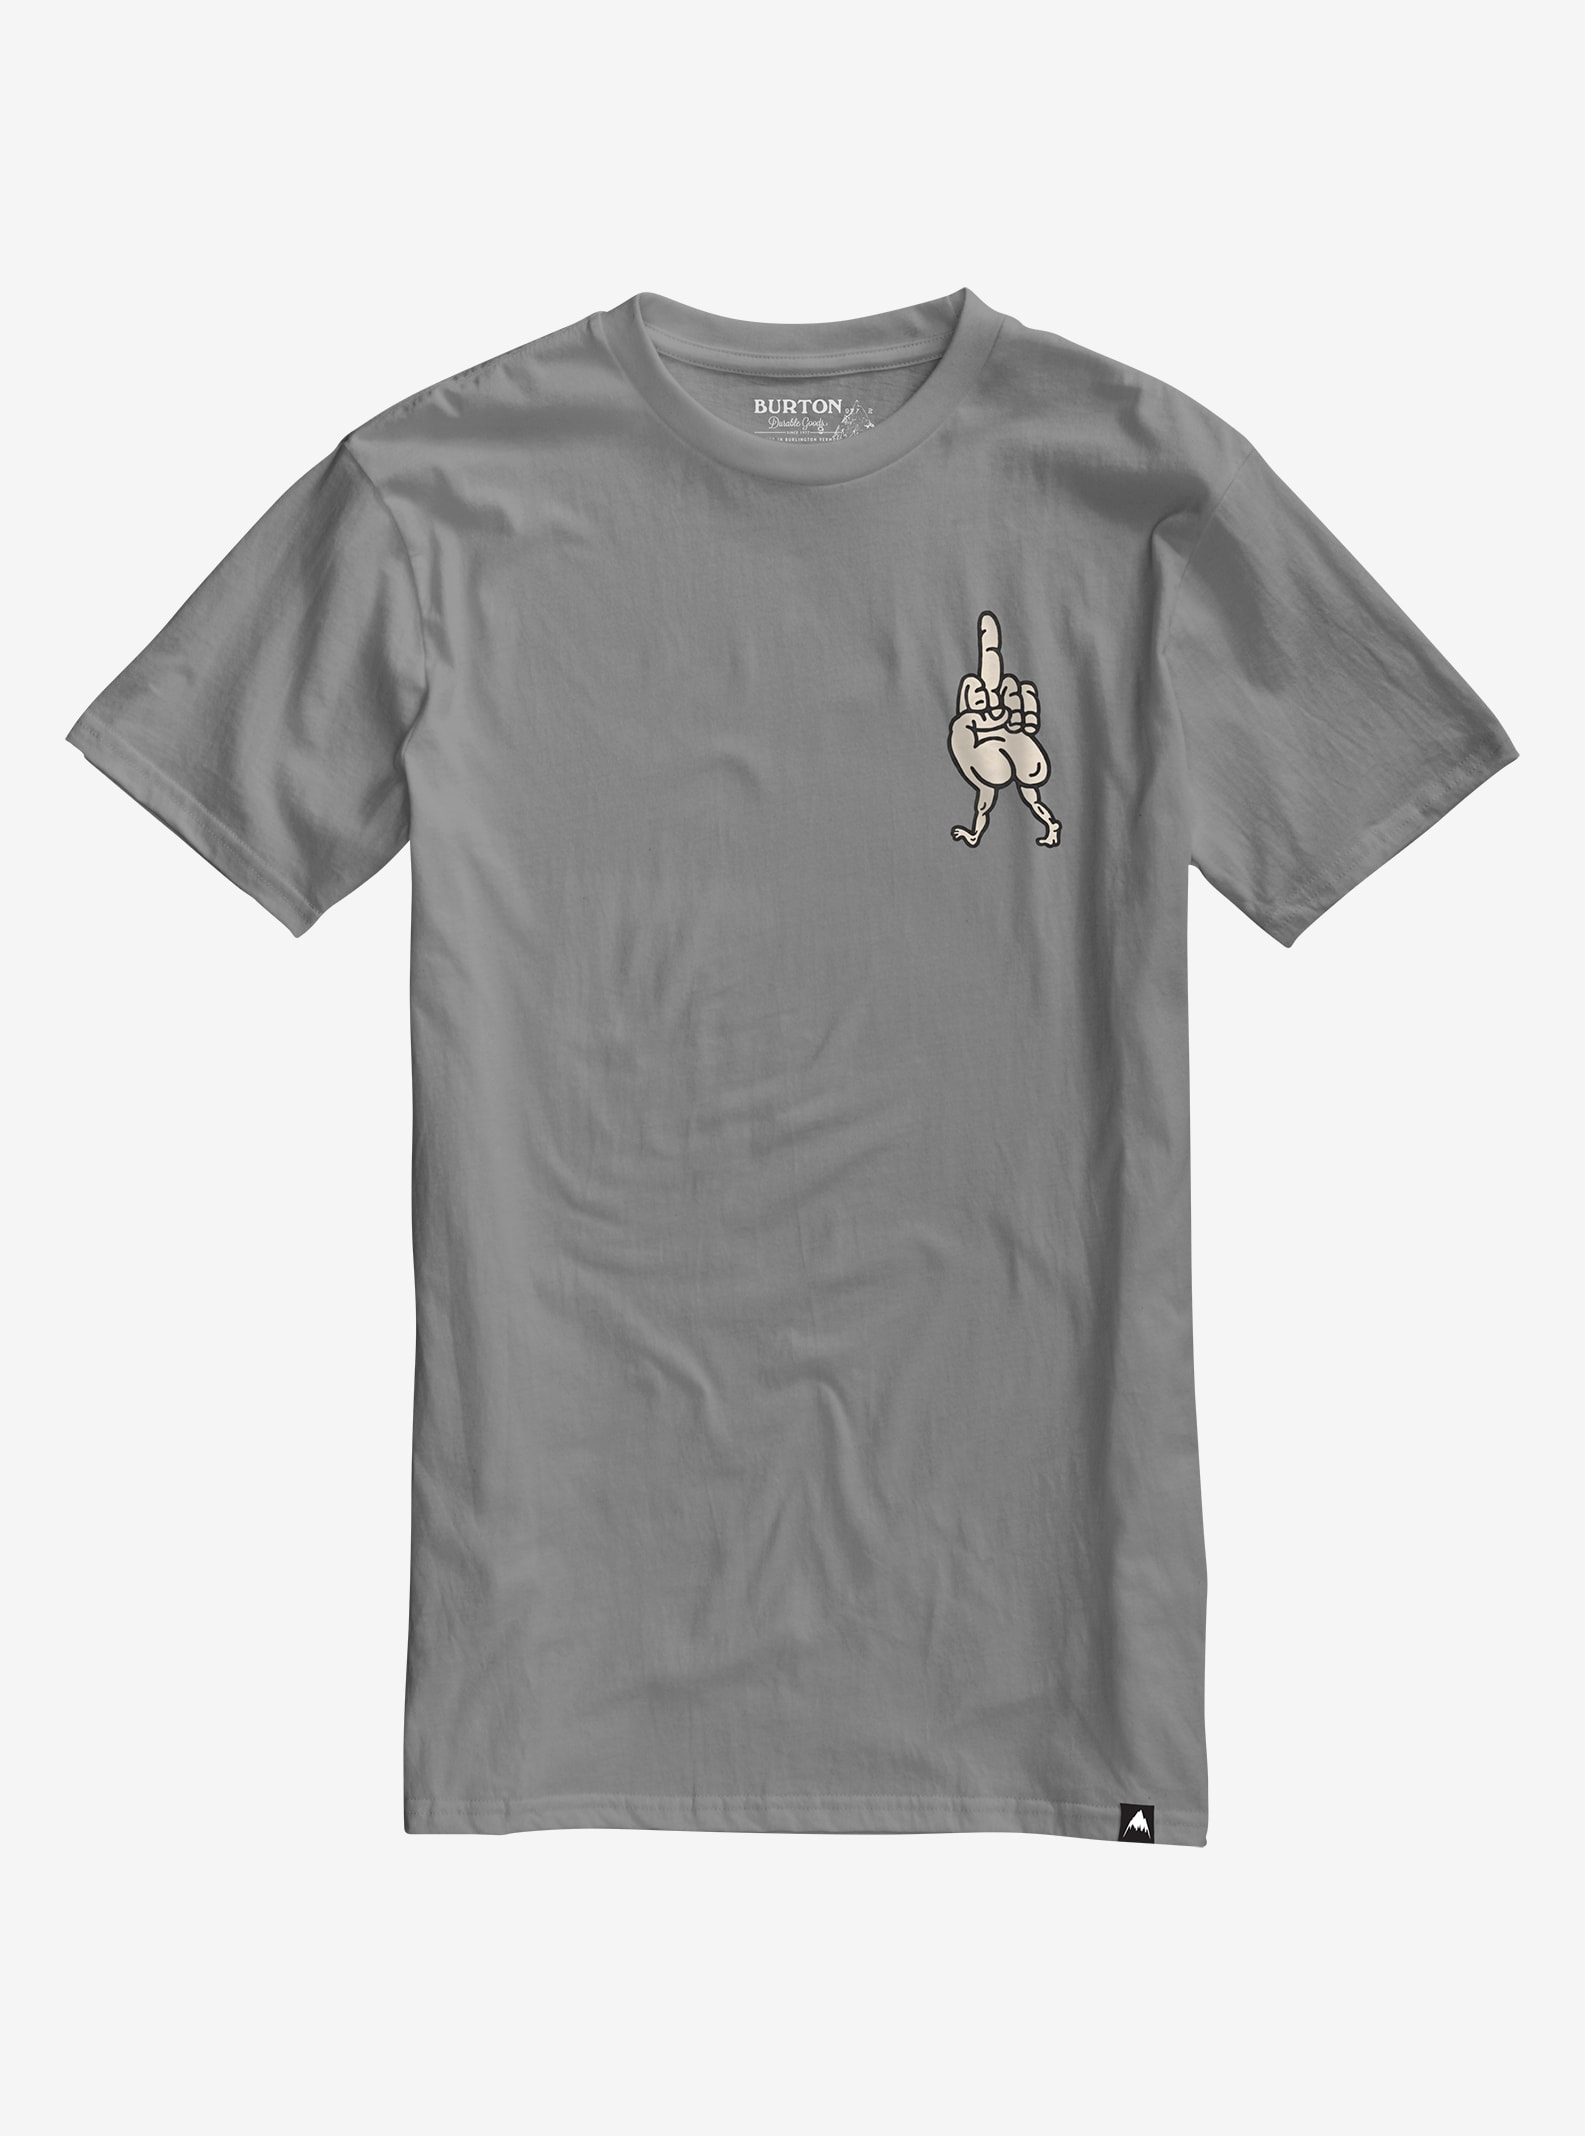 Burton Get Lost Short Sleeve T Shirt shown in Gray Heather